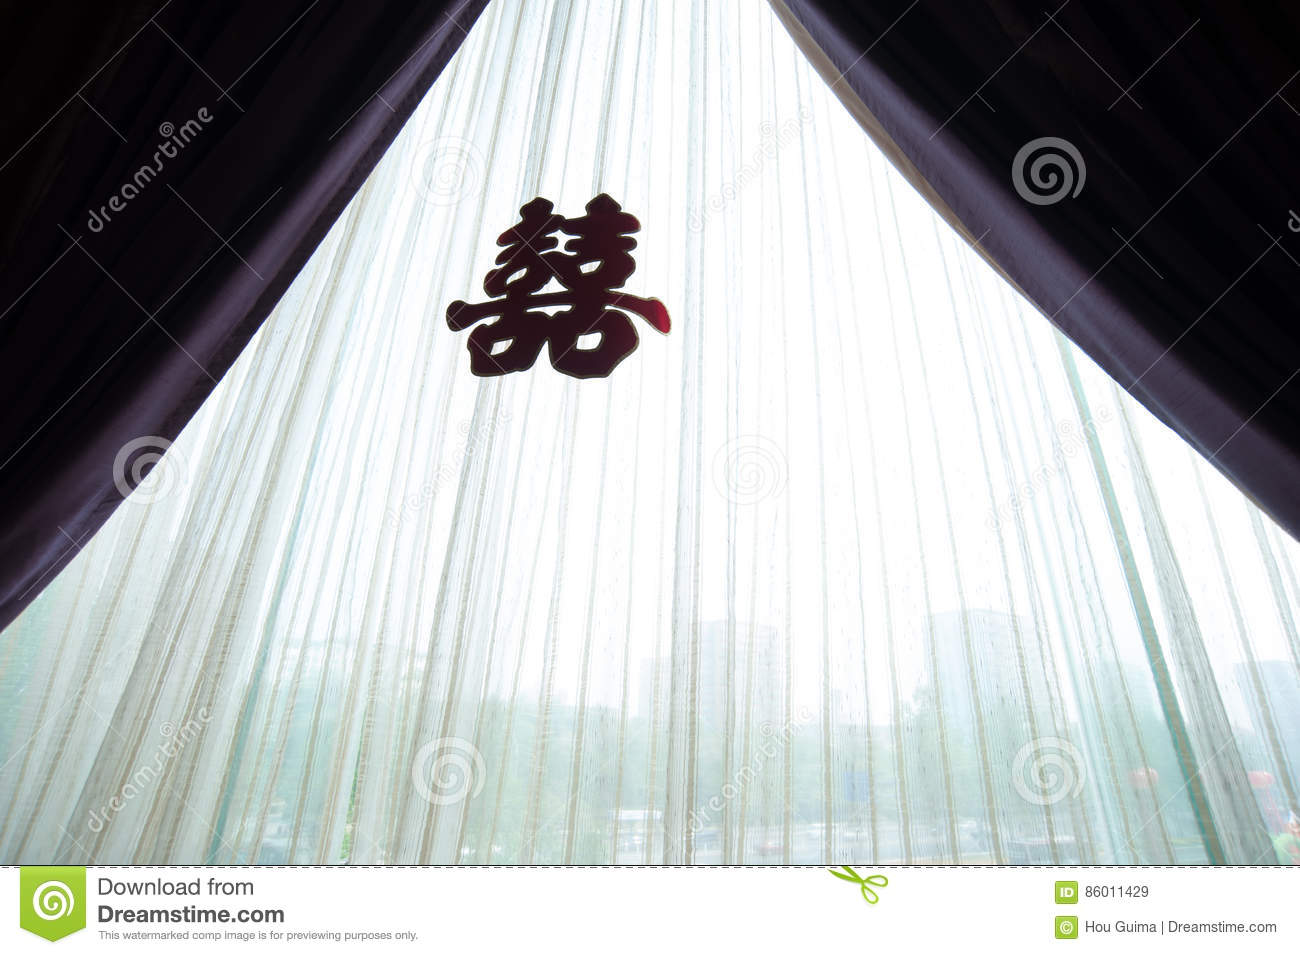 Double happiness paper cut stock photos download 37 images chinese wedding greeting word it is a wedding word on the window royalty free stock m4hsunfo